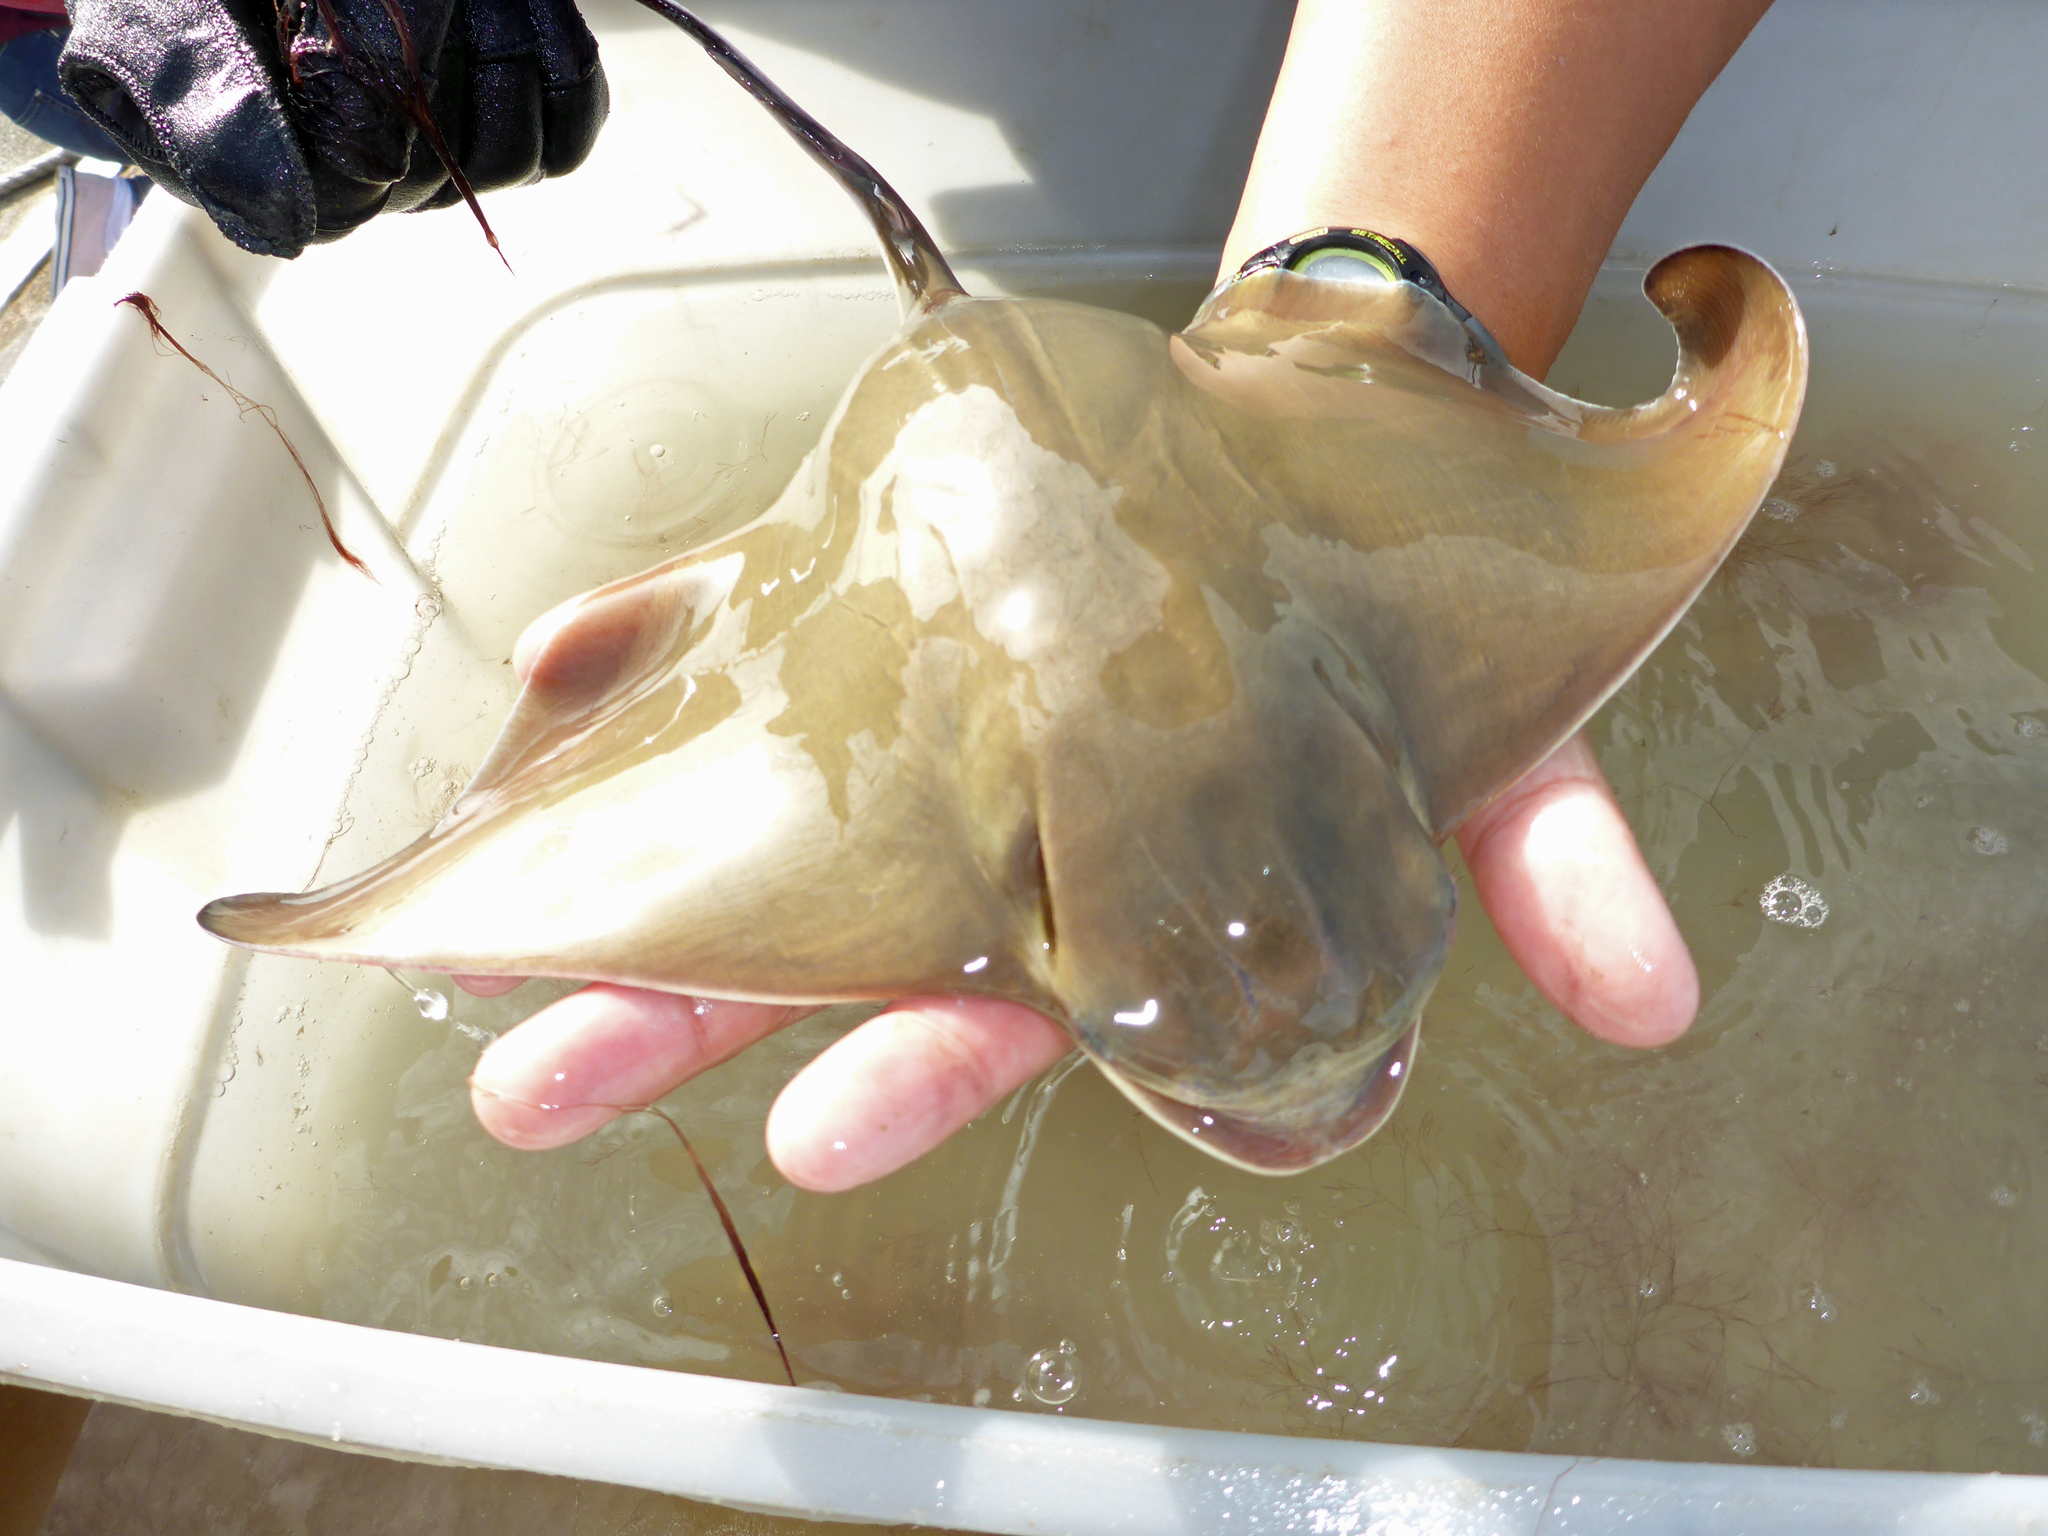 small bat ray resting on a person's hand